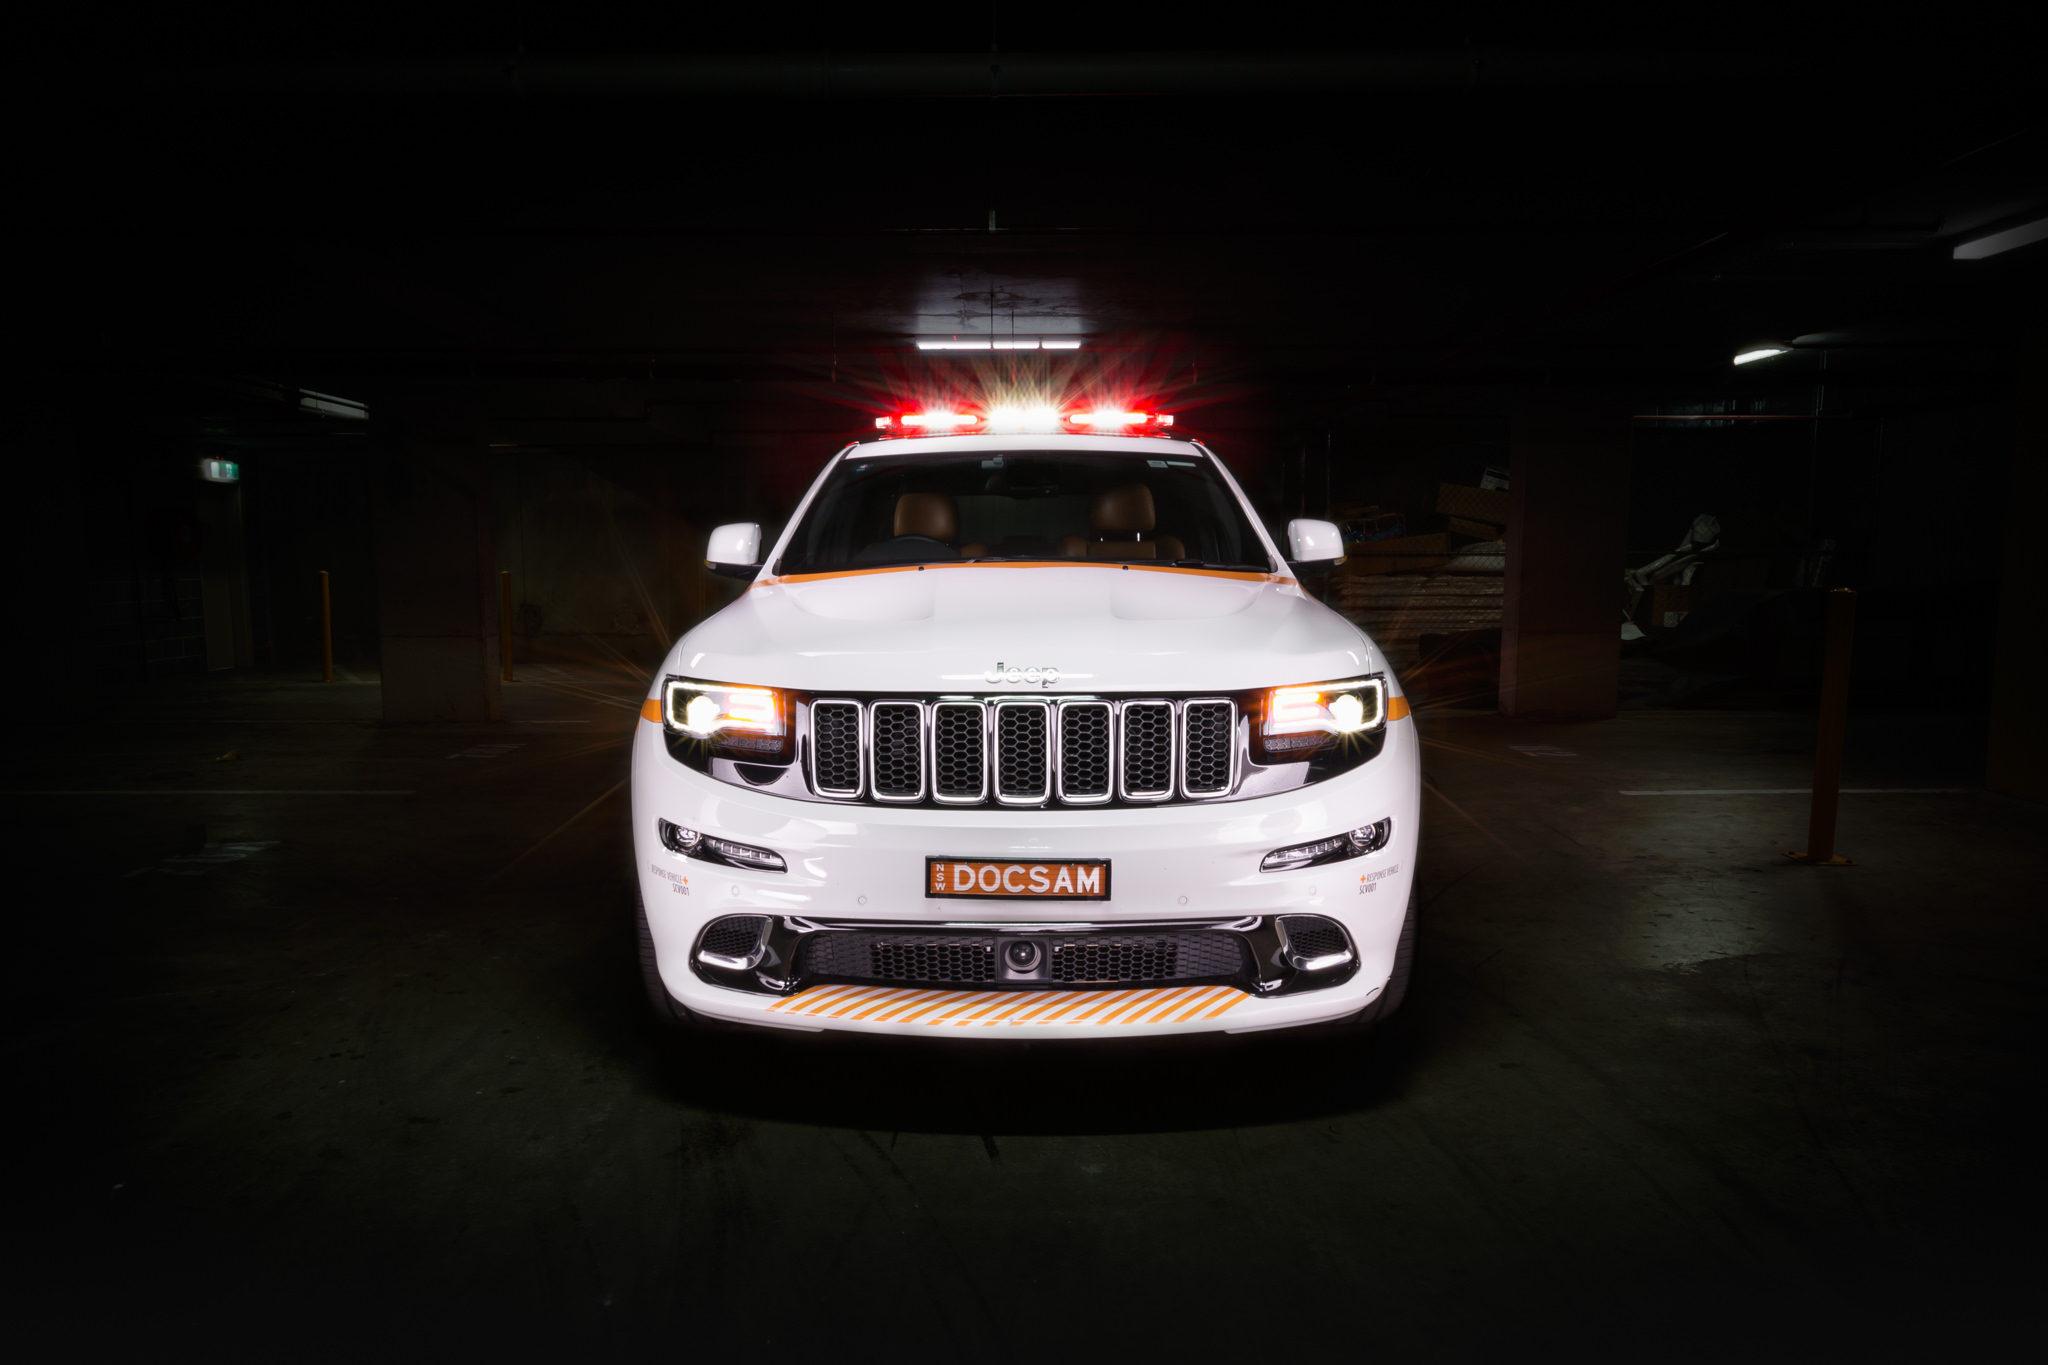 Southern Cross Vet Response Vehicle Grill, Jeep Grand Cherokee Car Photography